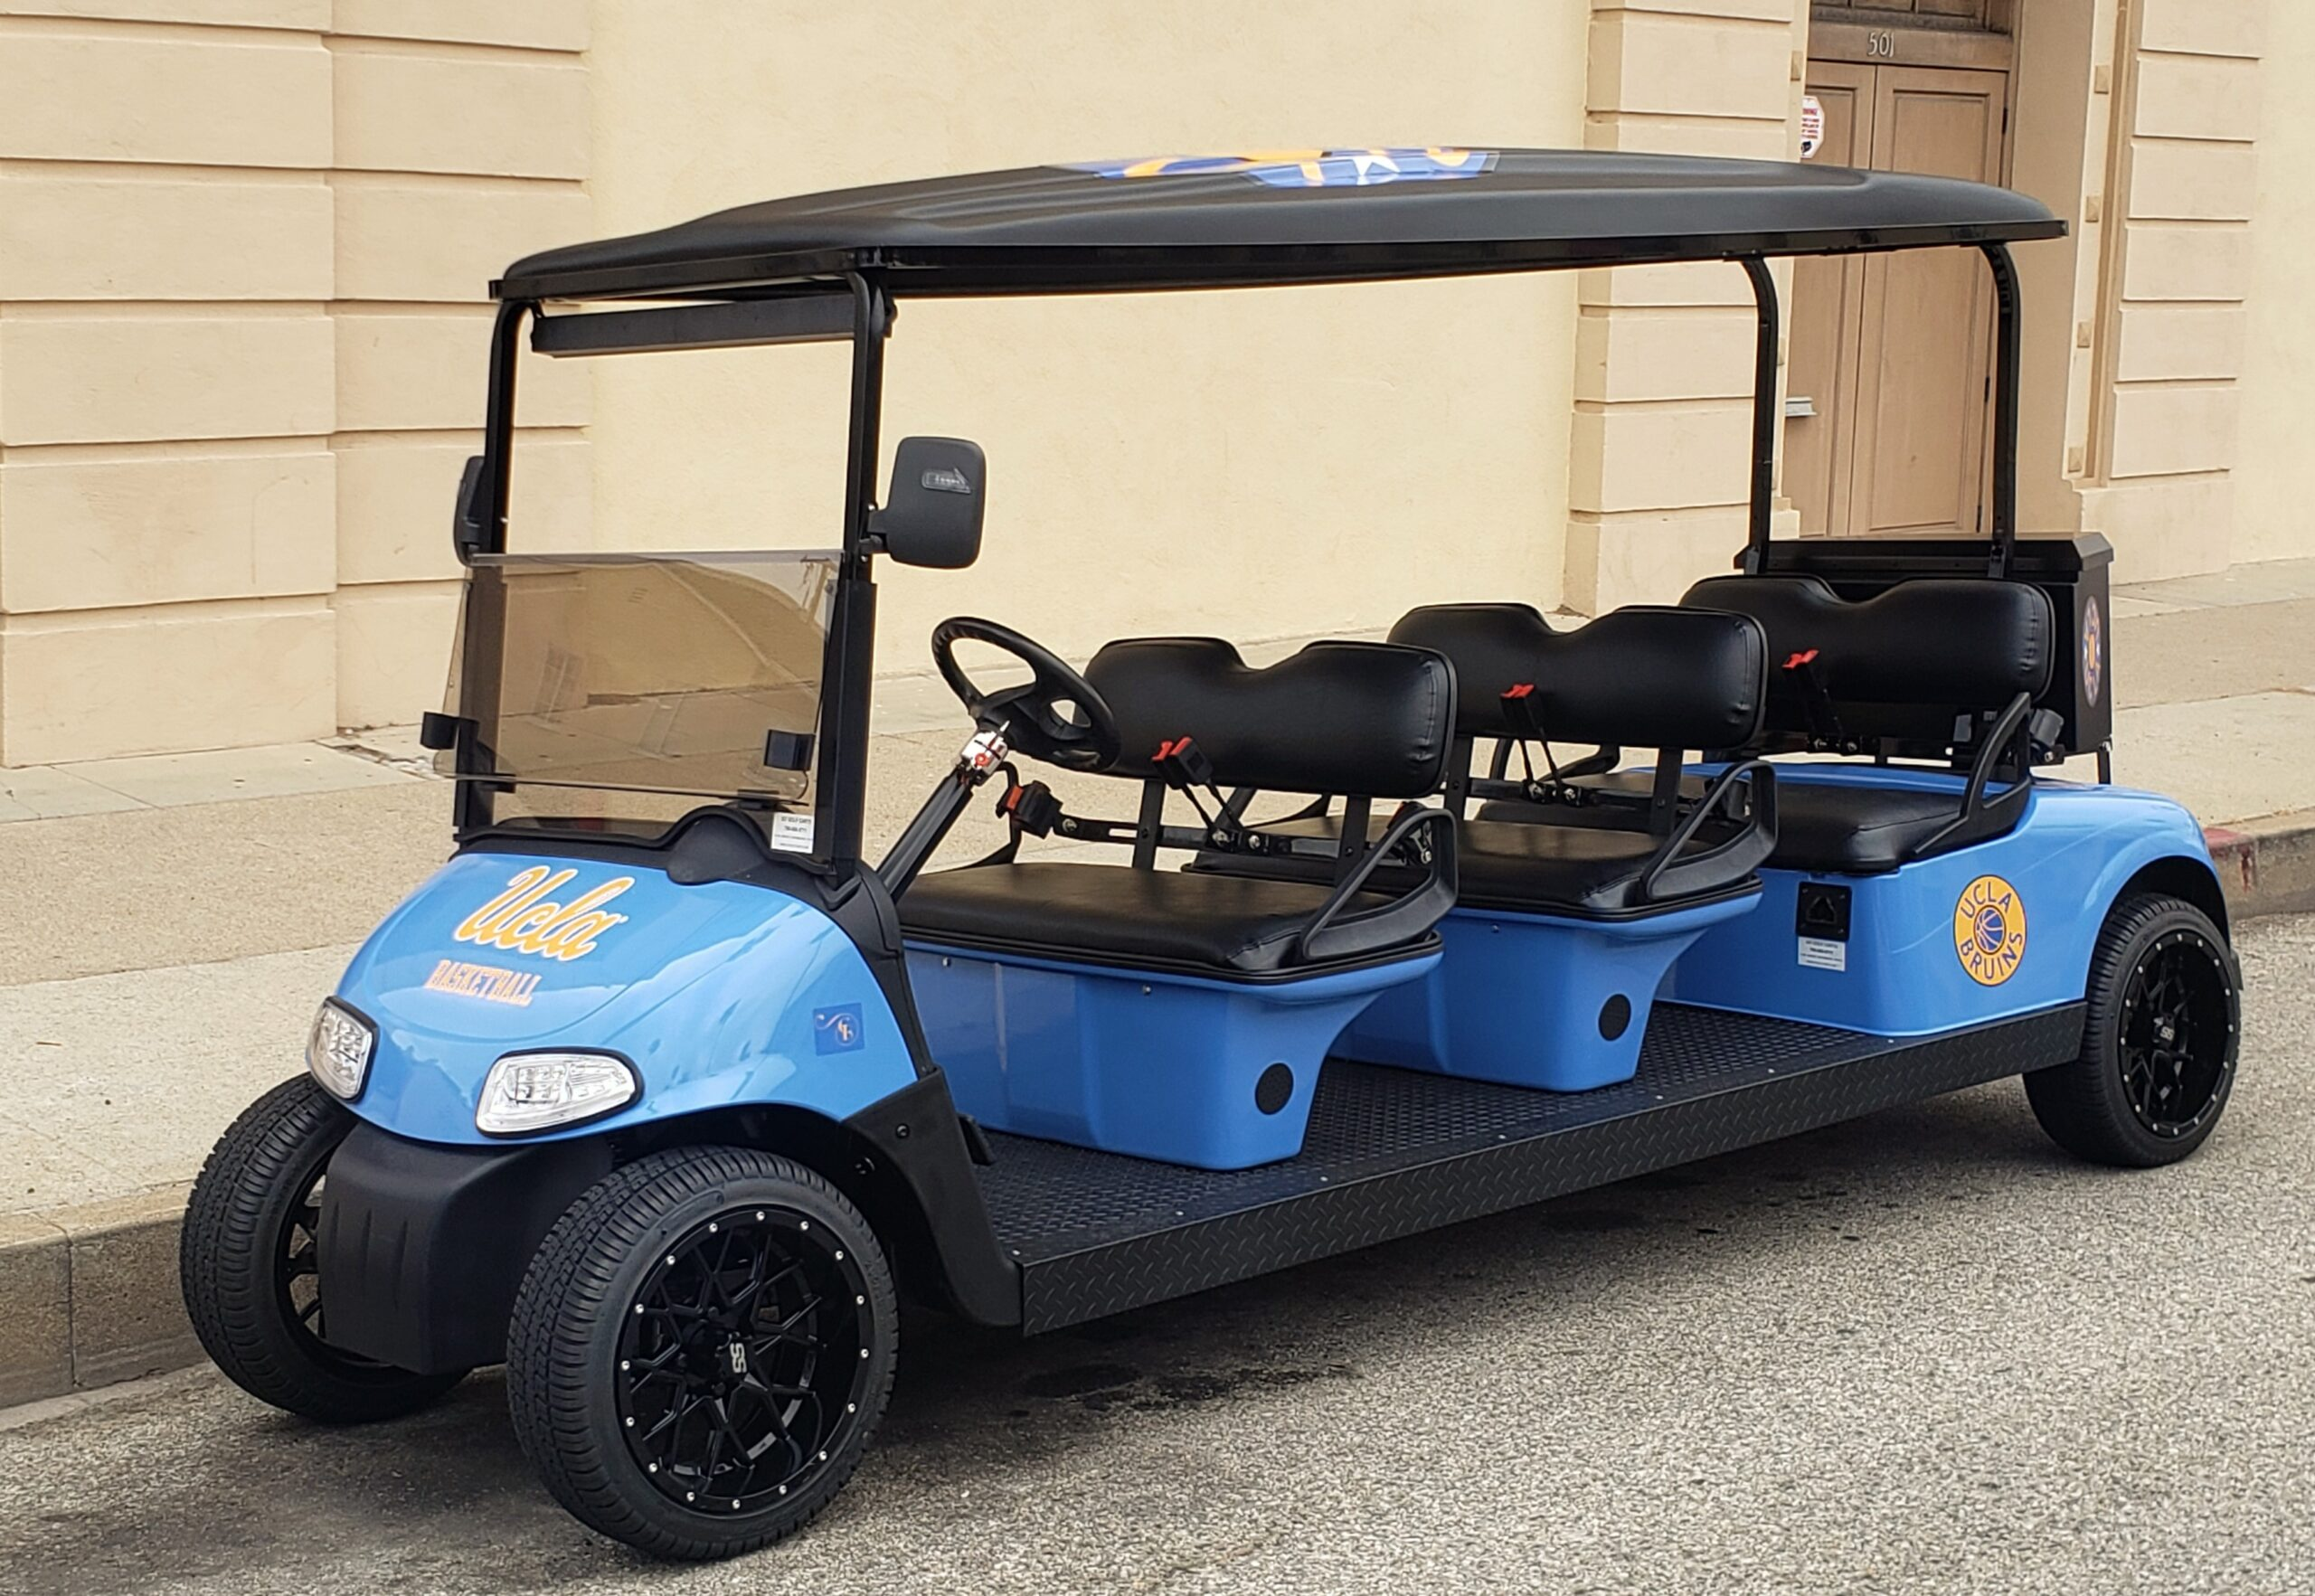 Ezgo RXV 6 Passenger Golf Cart